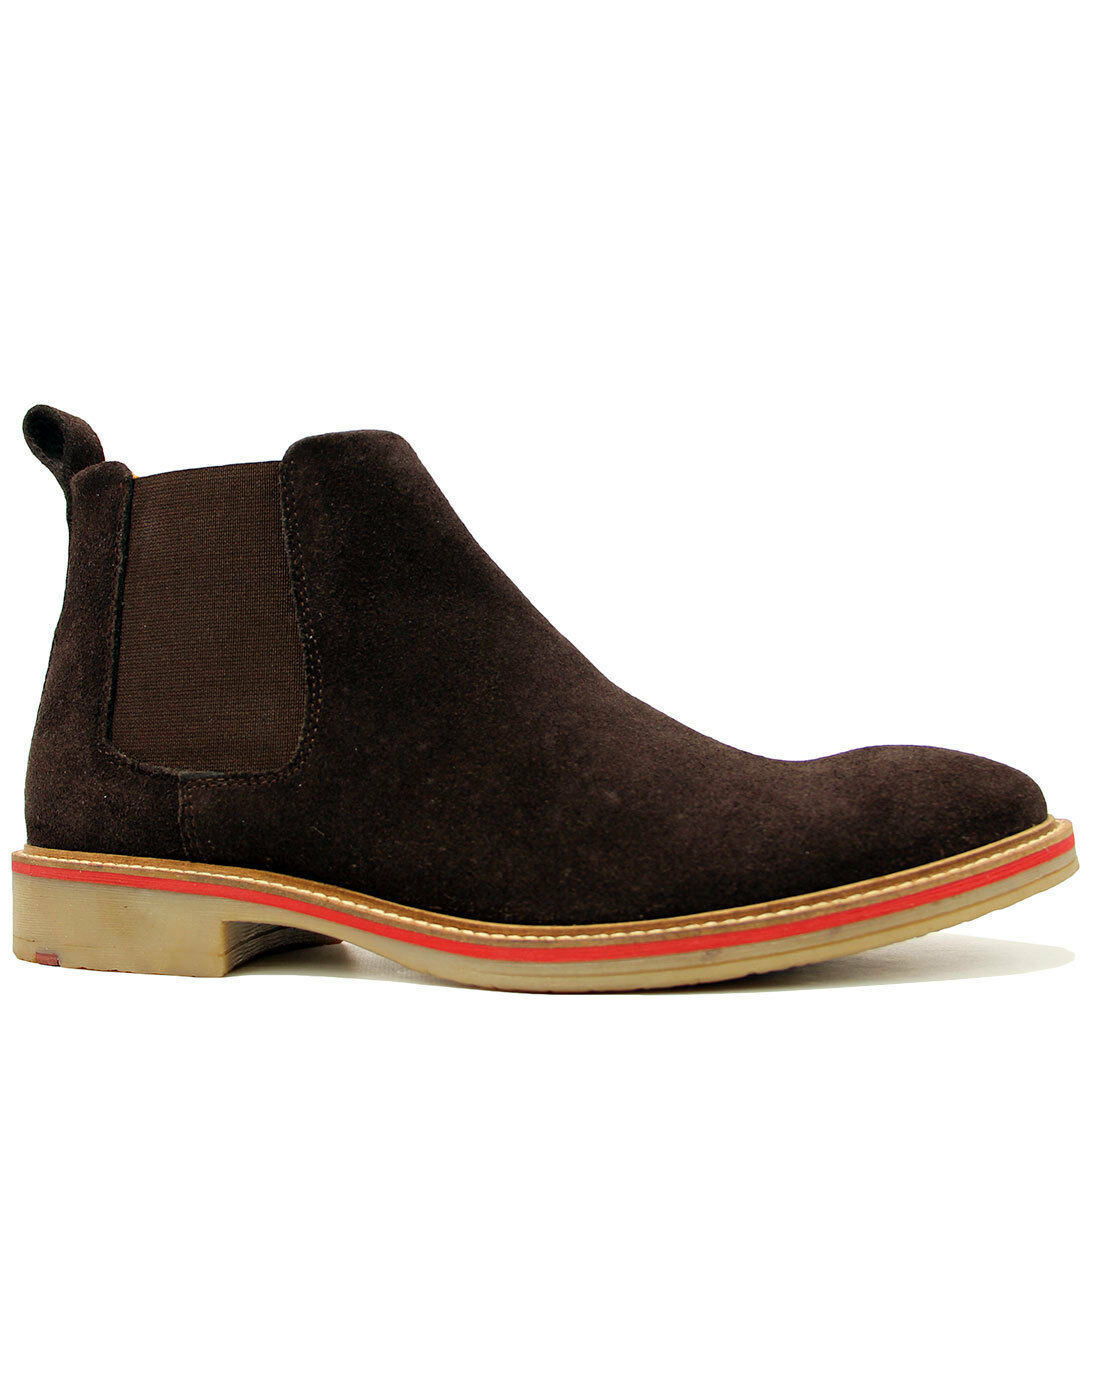 NEW MOD RETRO 60s MENS SUEDE CHELSEA BOOTS with tipped sole DARK BROWN M611DBS